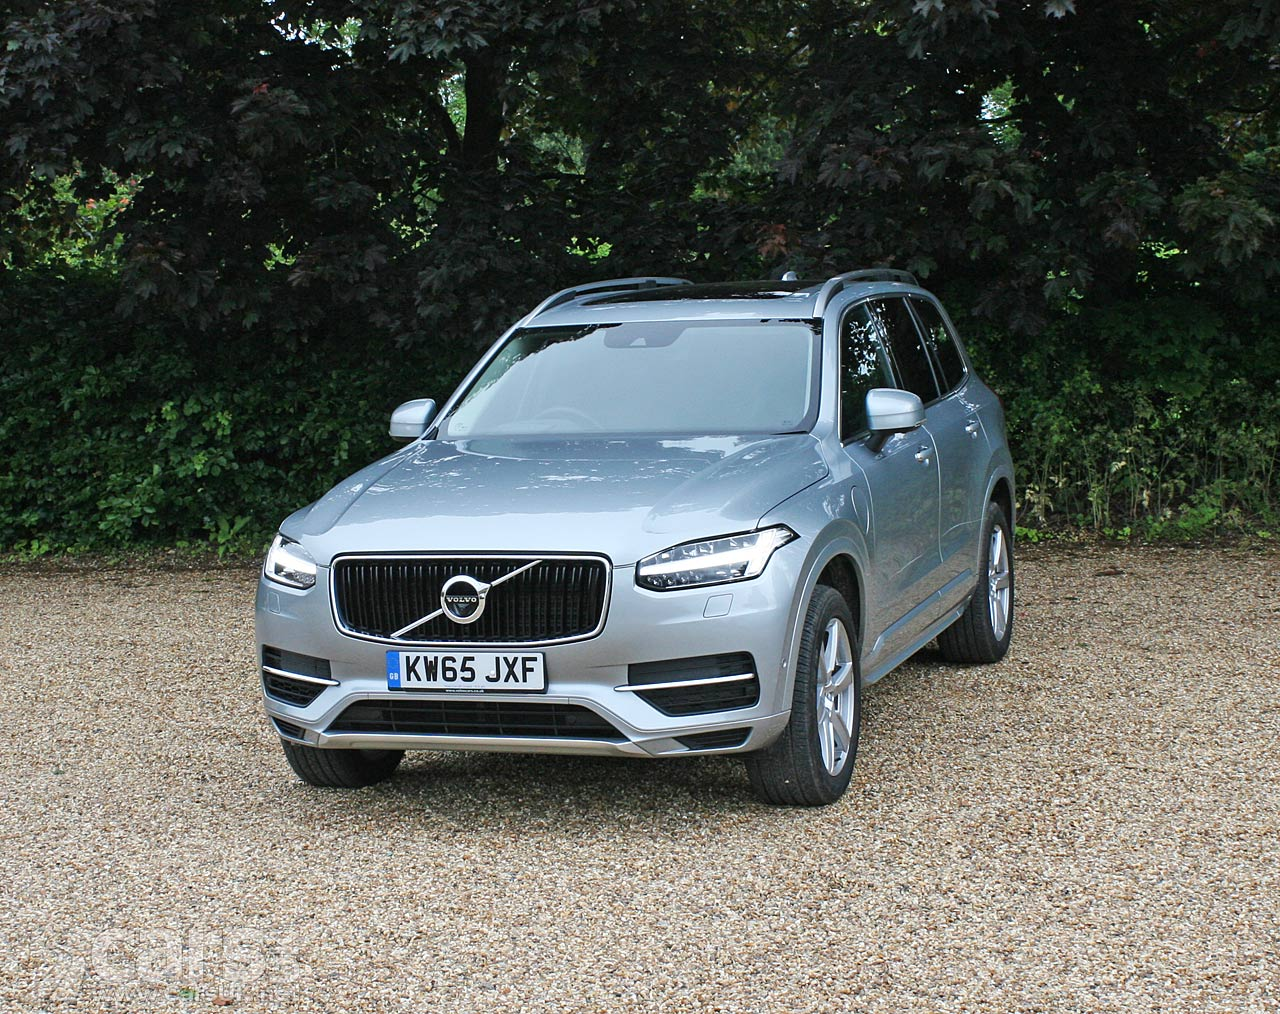 Volvo XC90 Will Be The BIGGEST Selling Large Premium SUV